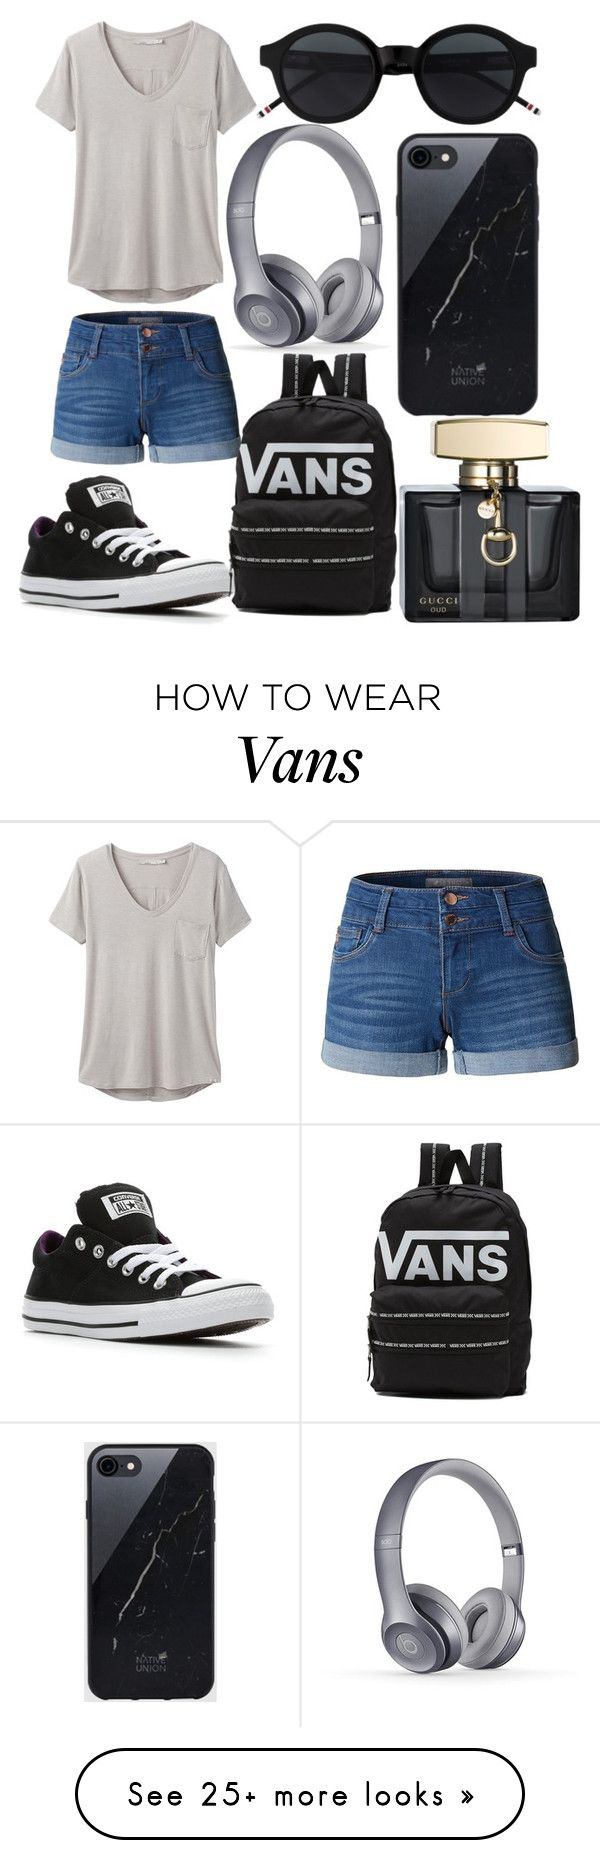 """""""Casual Look"""" by mackenzieq on Polyvore featuring LE3NO, prAna, Converse, Vans, Sefton and Gucci"""